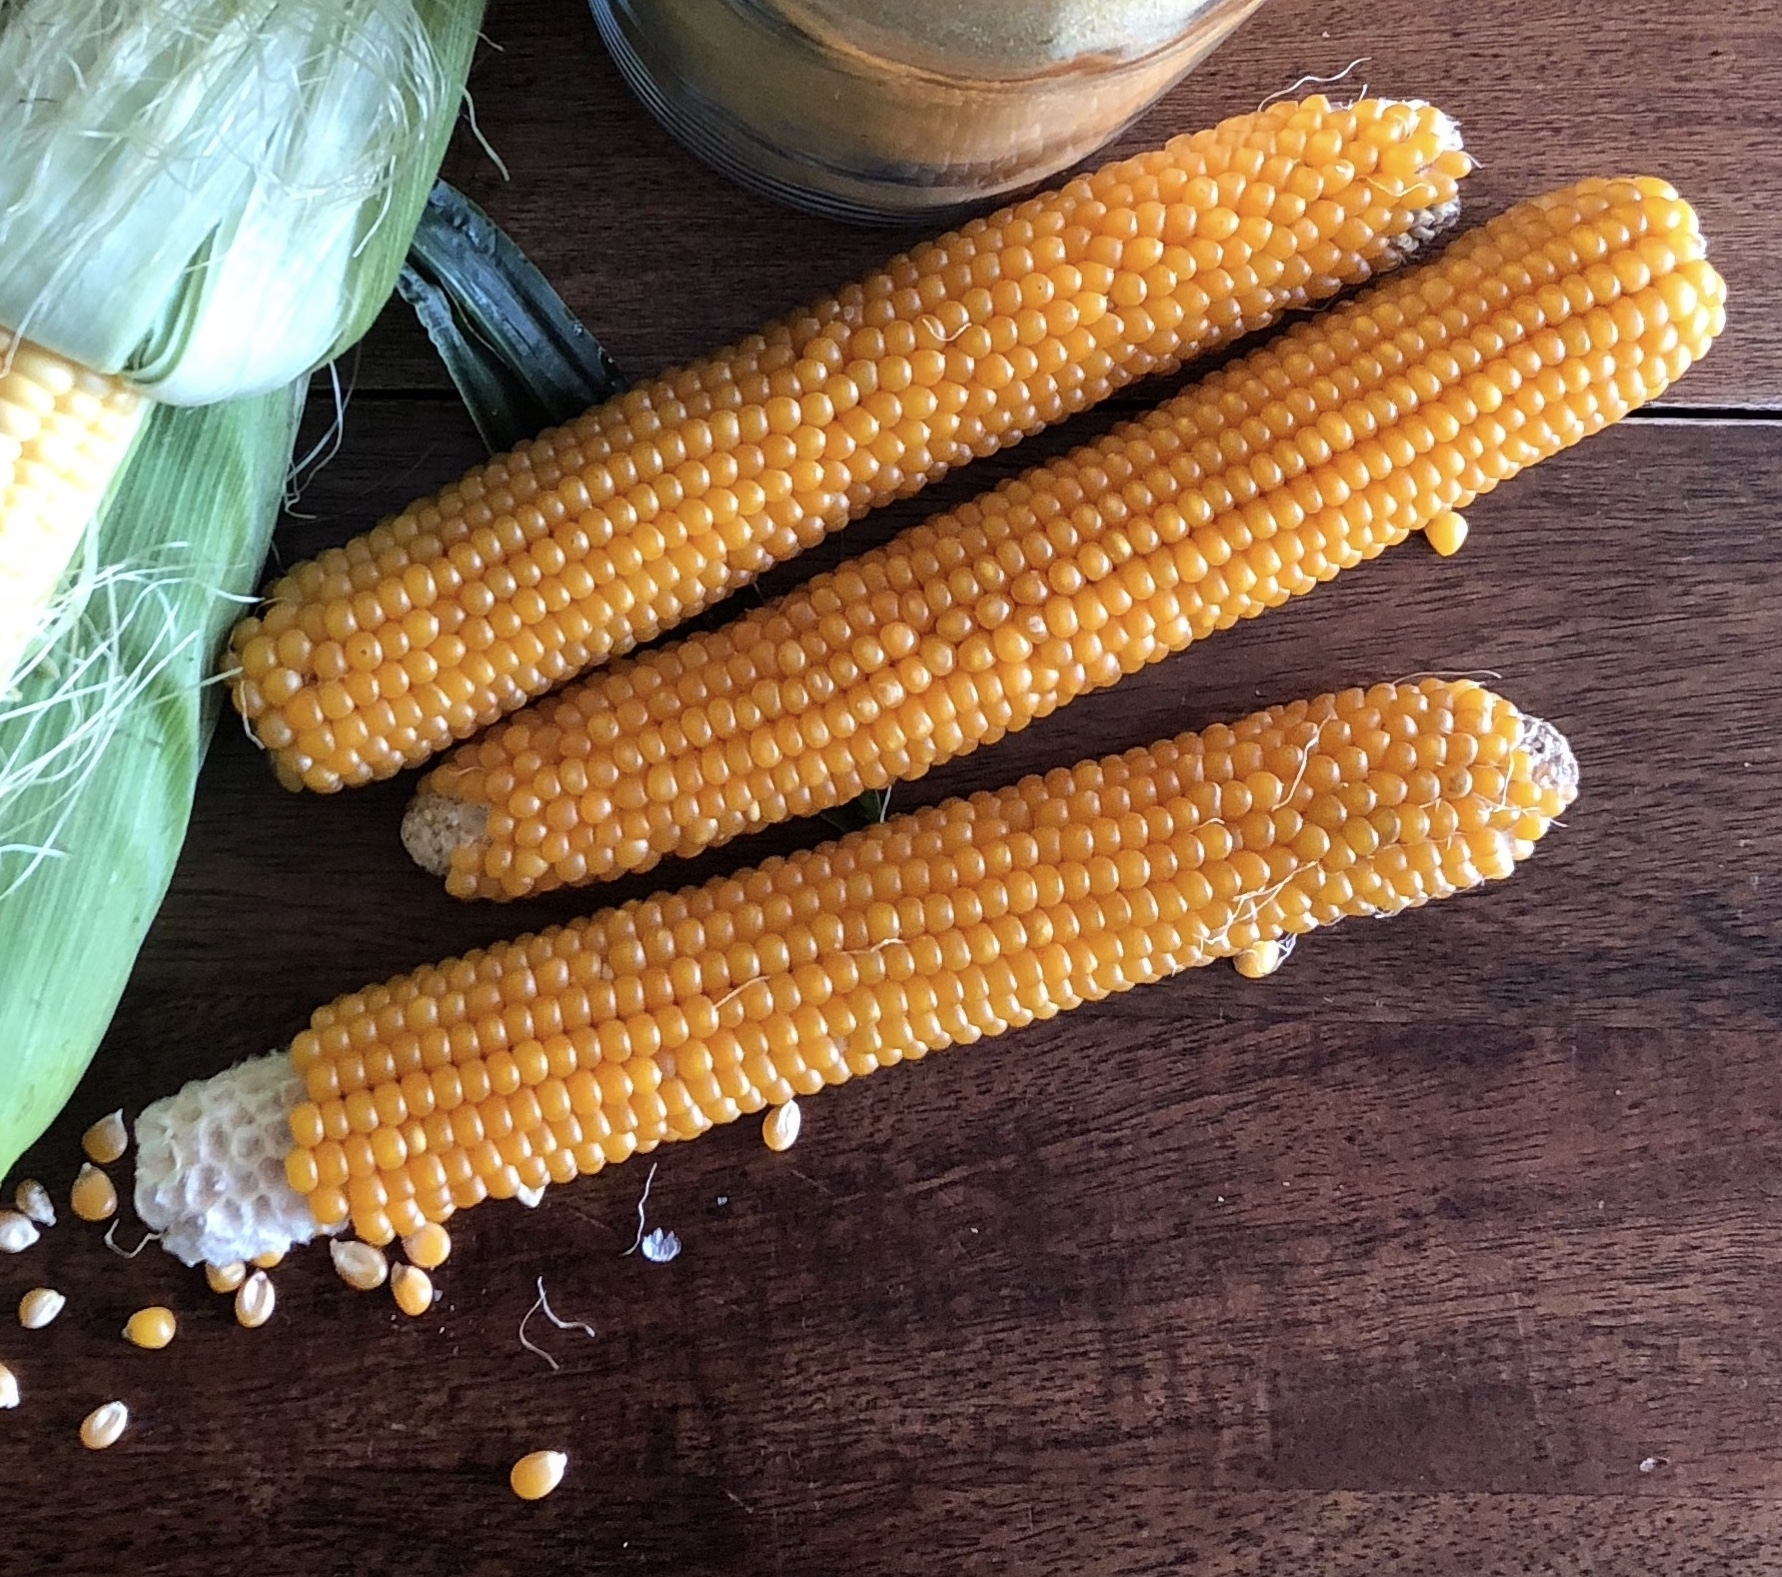 We get our popping corn dried on the cob from Farmer Ted at Windflower Farm, but any bagged popping corn will do.